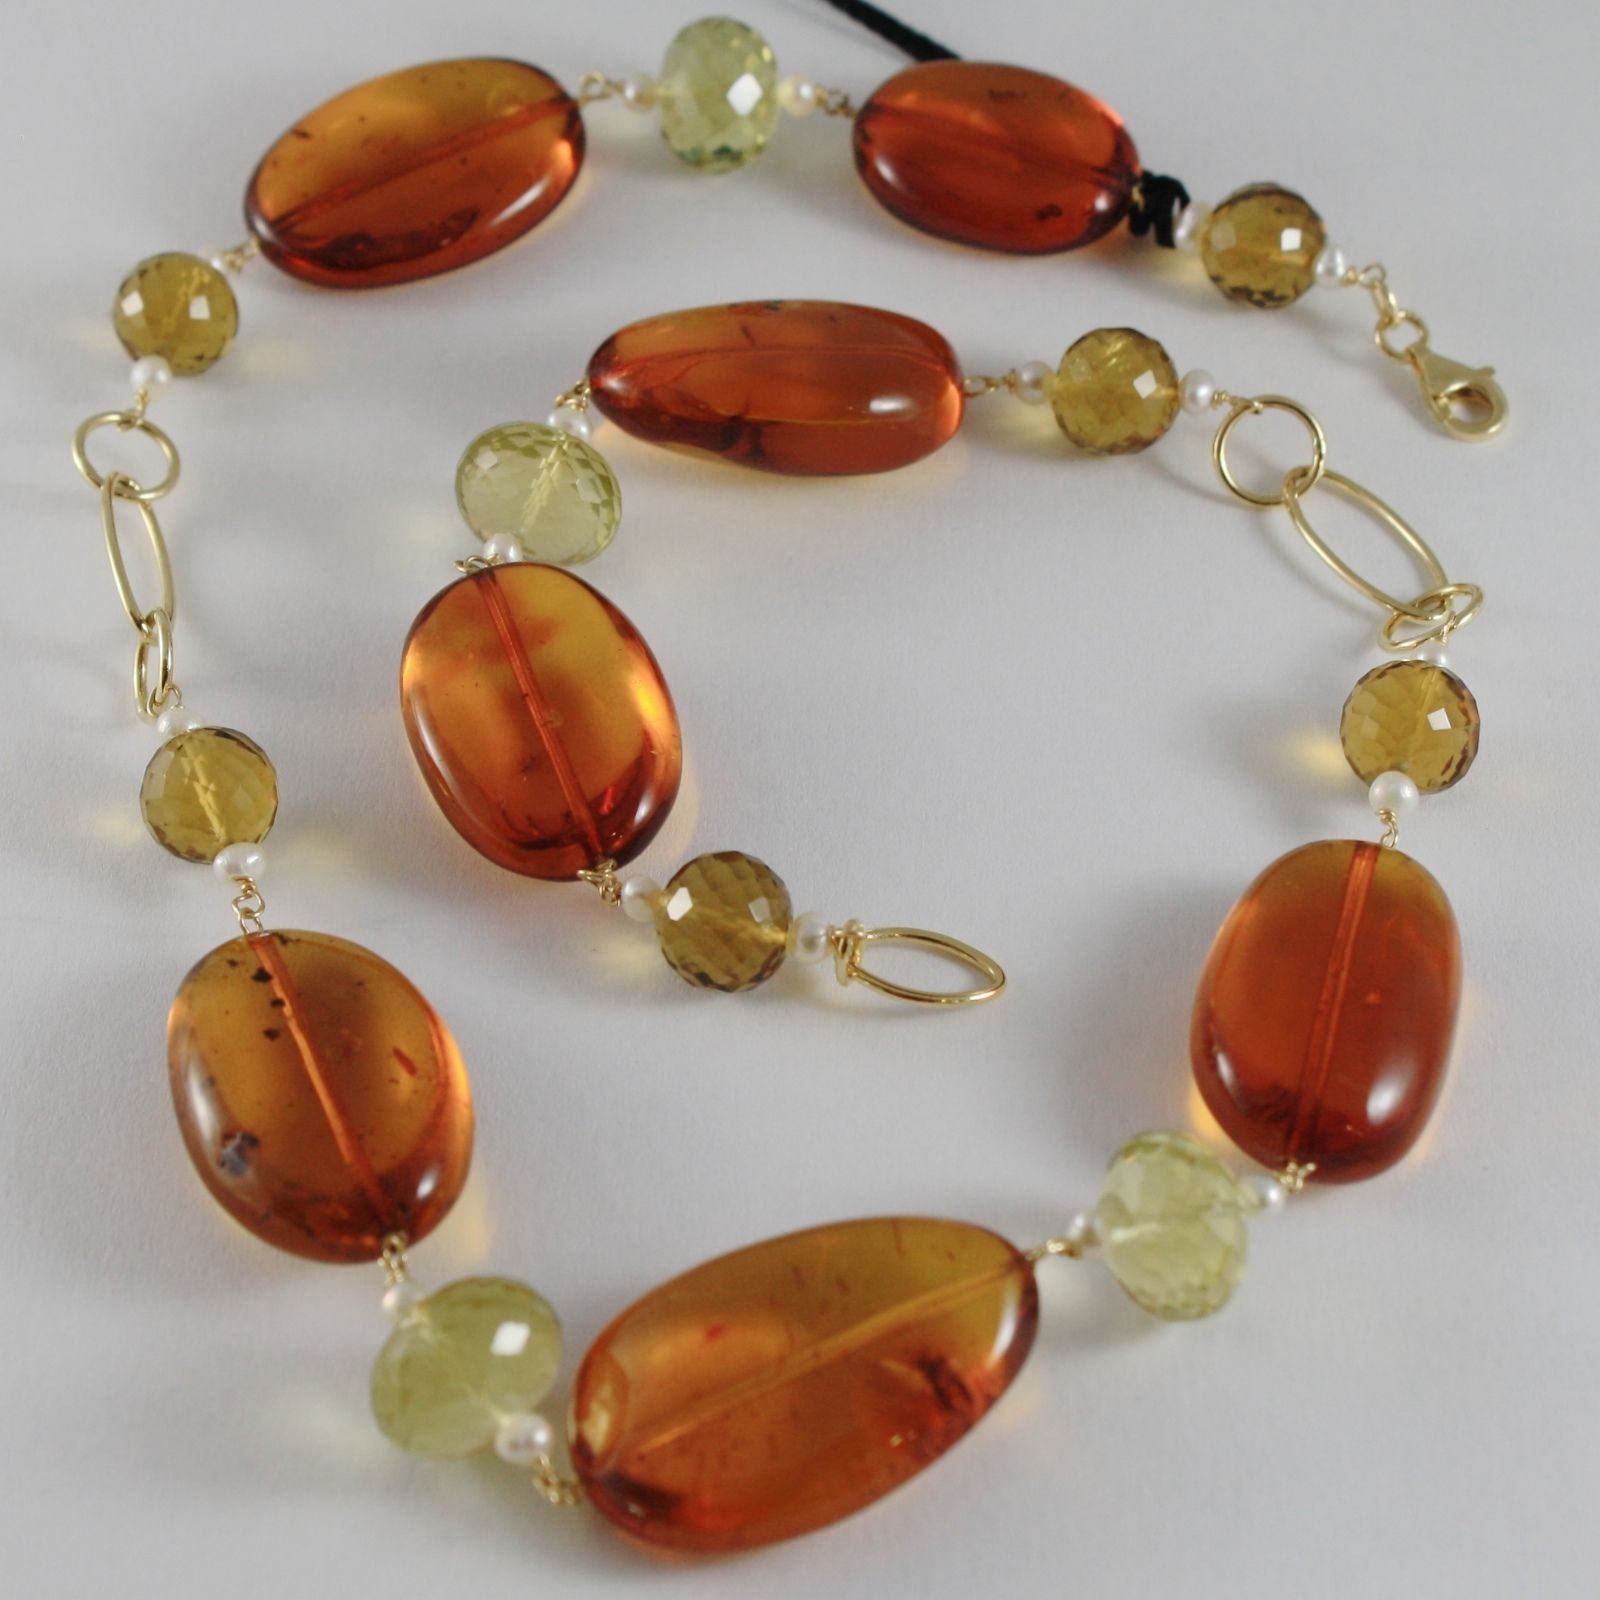 18K YELLOW GOLD NECKLACE WITH BIG AMBER, LEMON QUARTZ, CITRINE, MADE IN ITALY